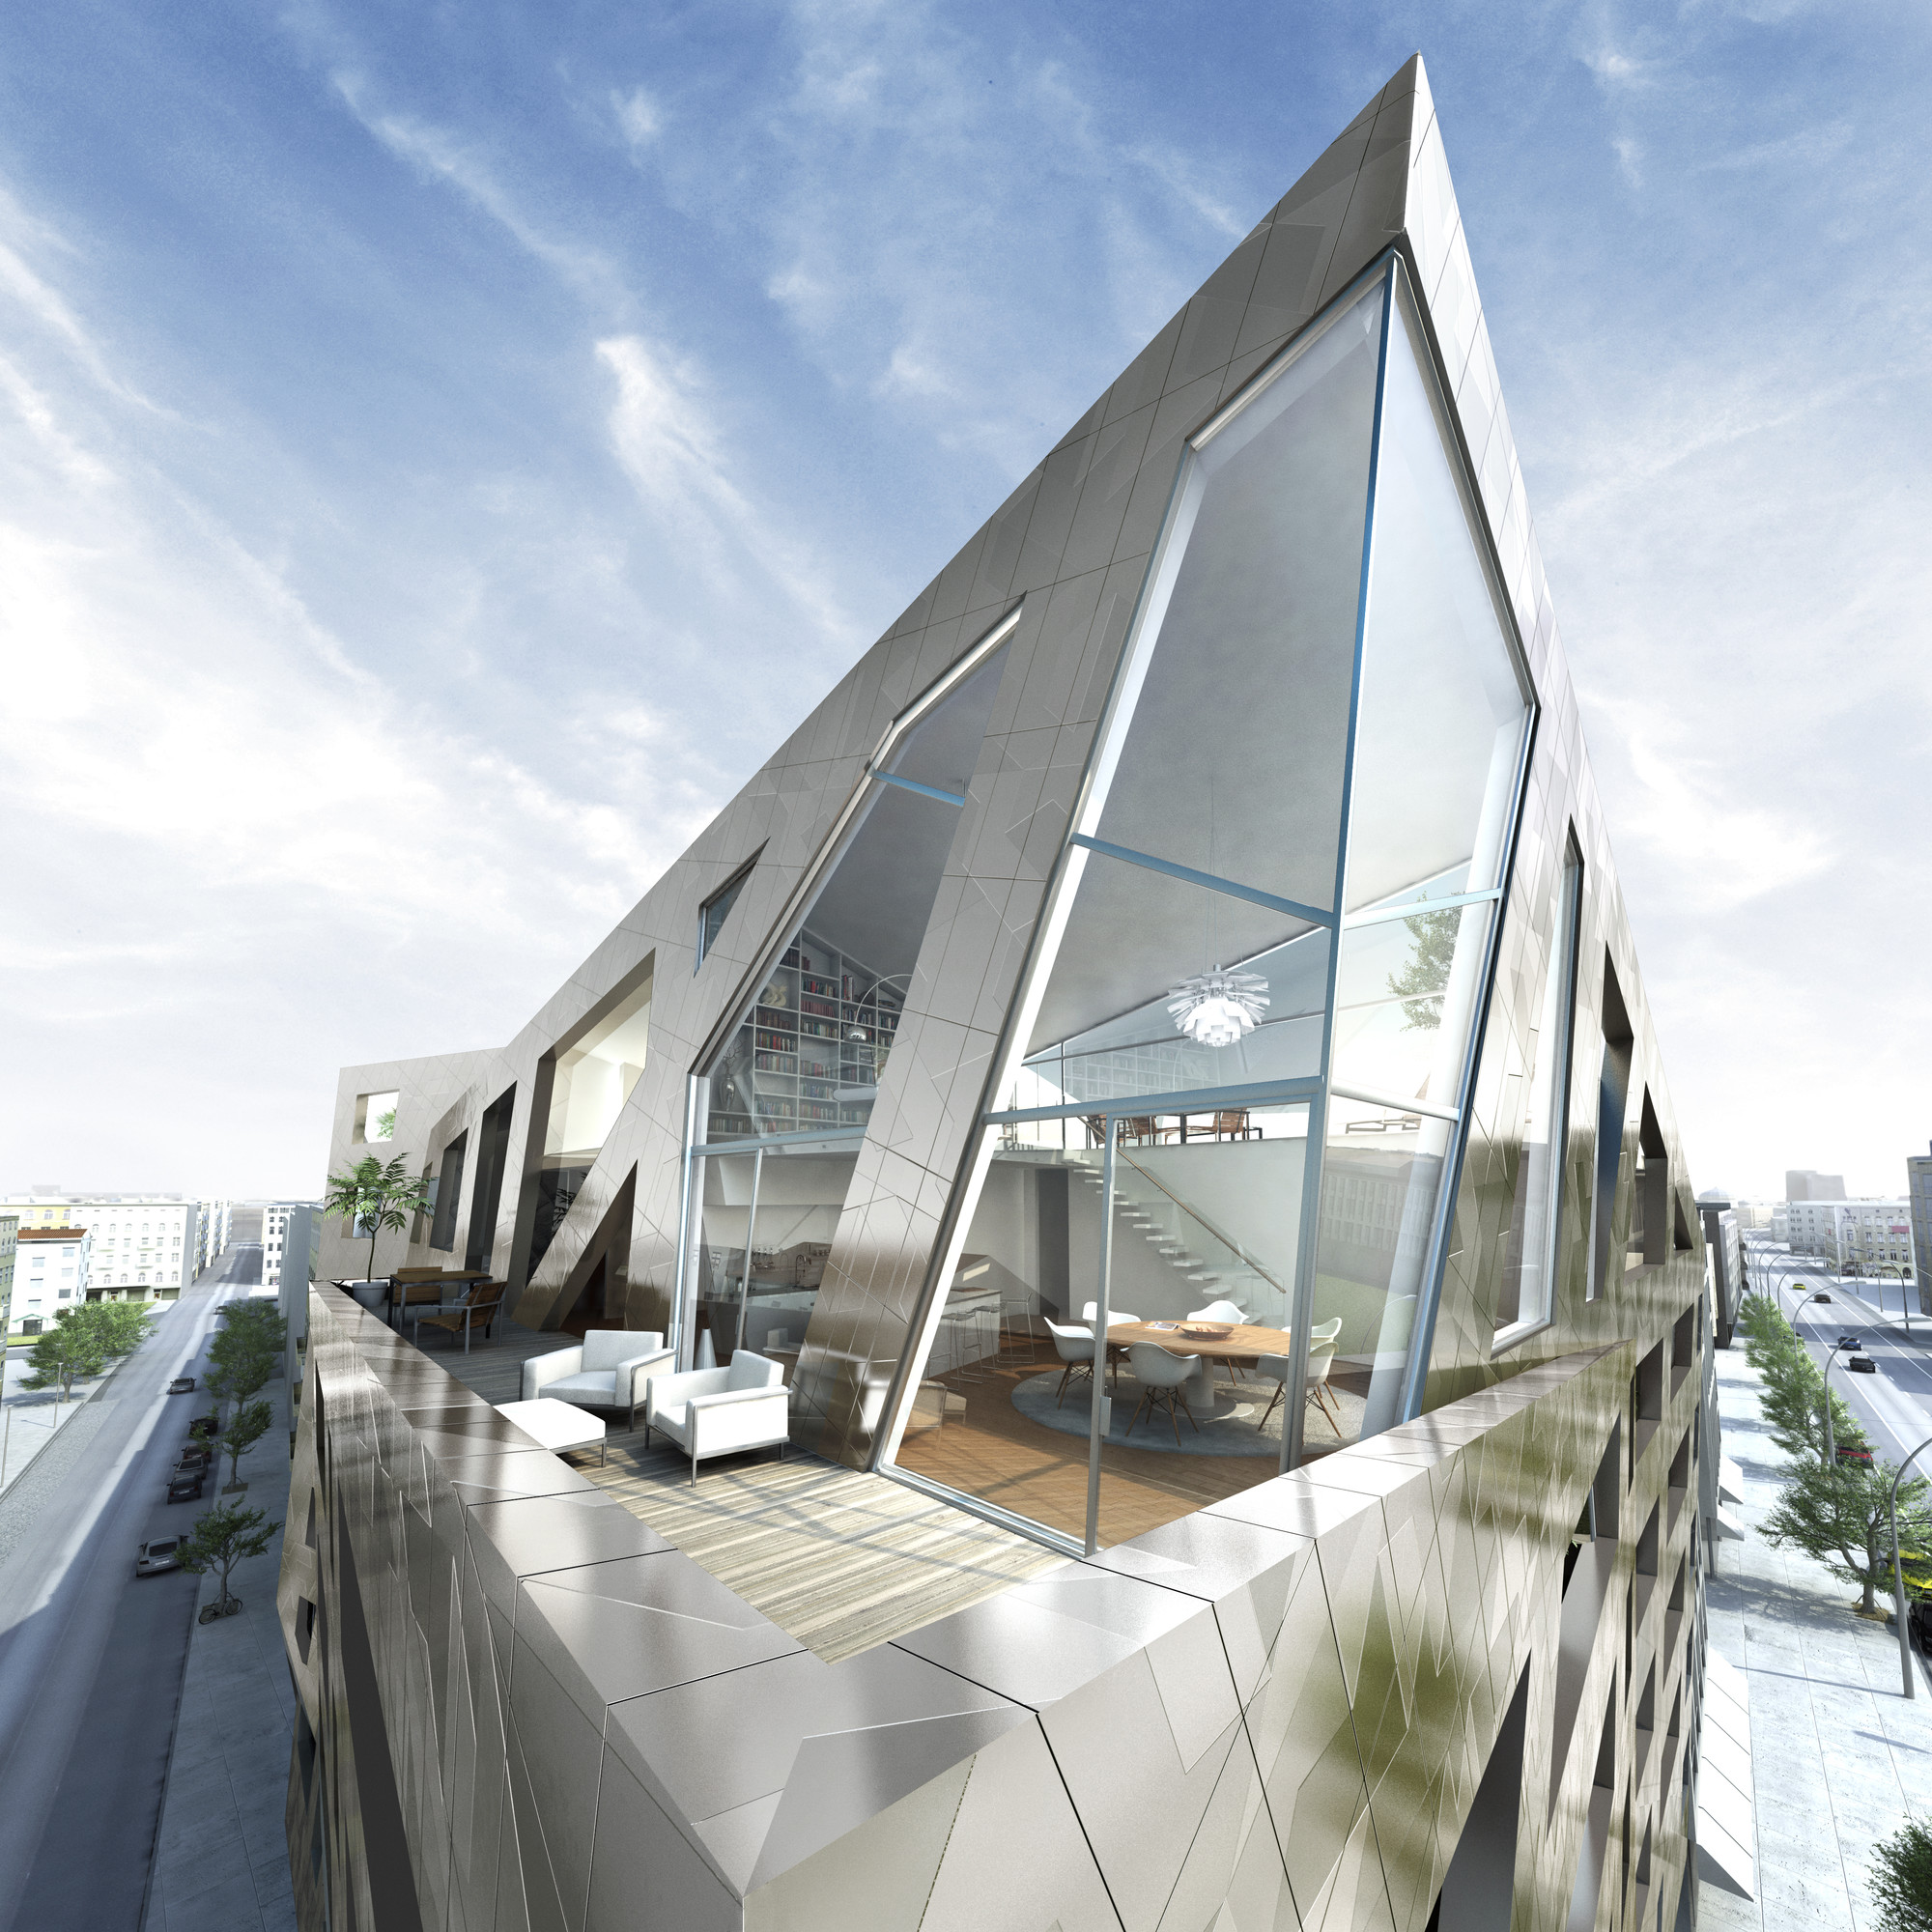 Daniel libeskind designs apartment building for berlin for Daniel libeskind architectural style